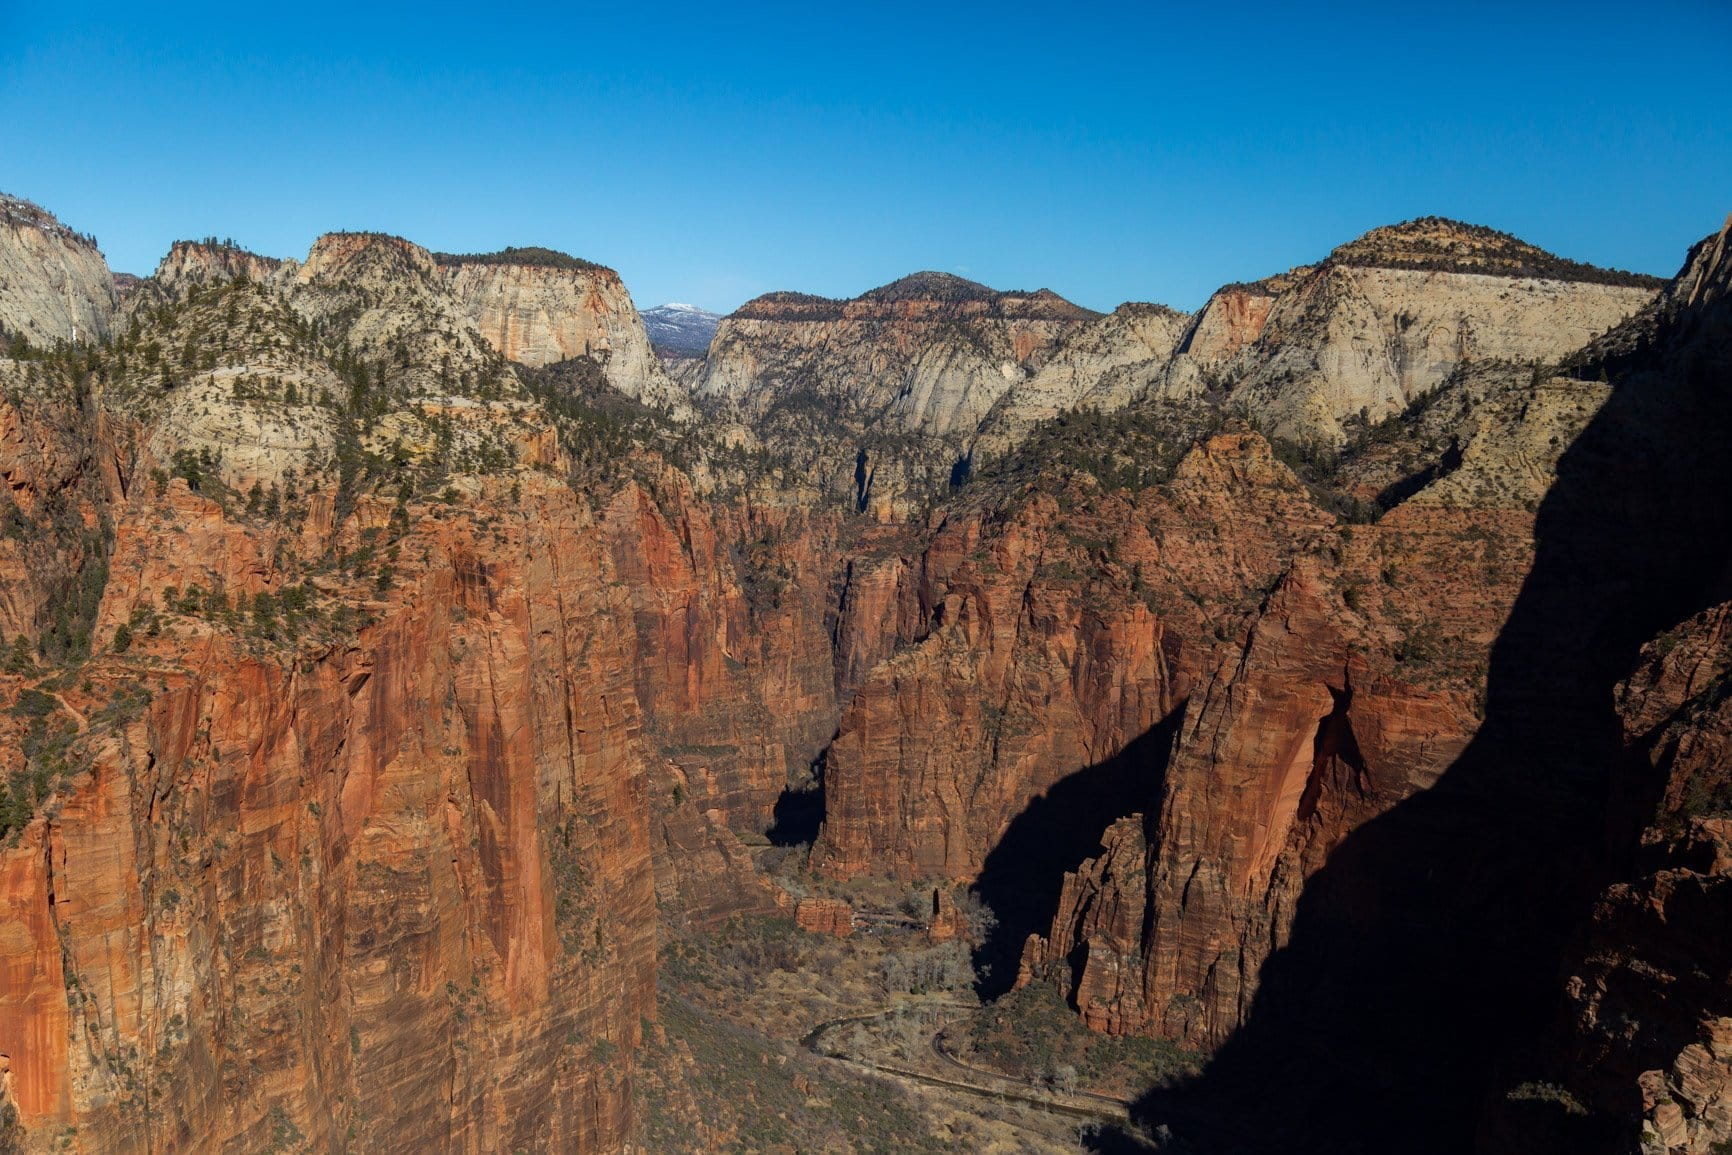 the view of the narrows from angels landing in zion national park. Zion is a greate place to elope in southern utah